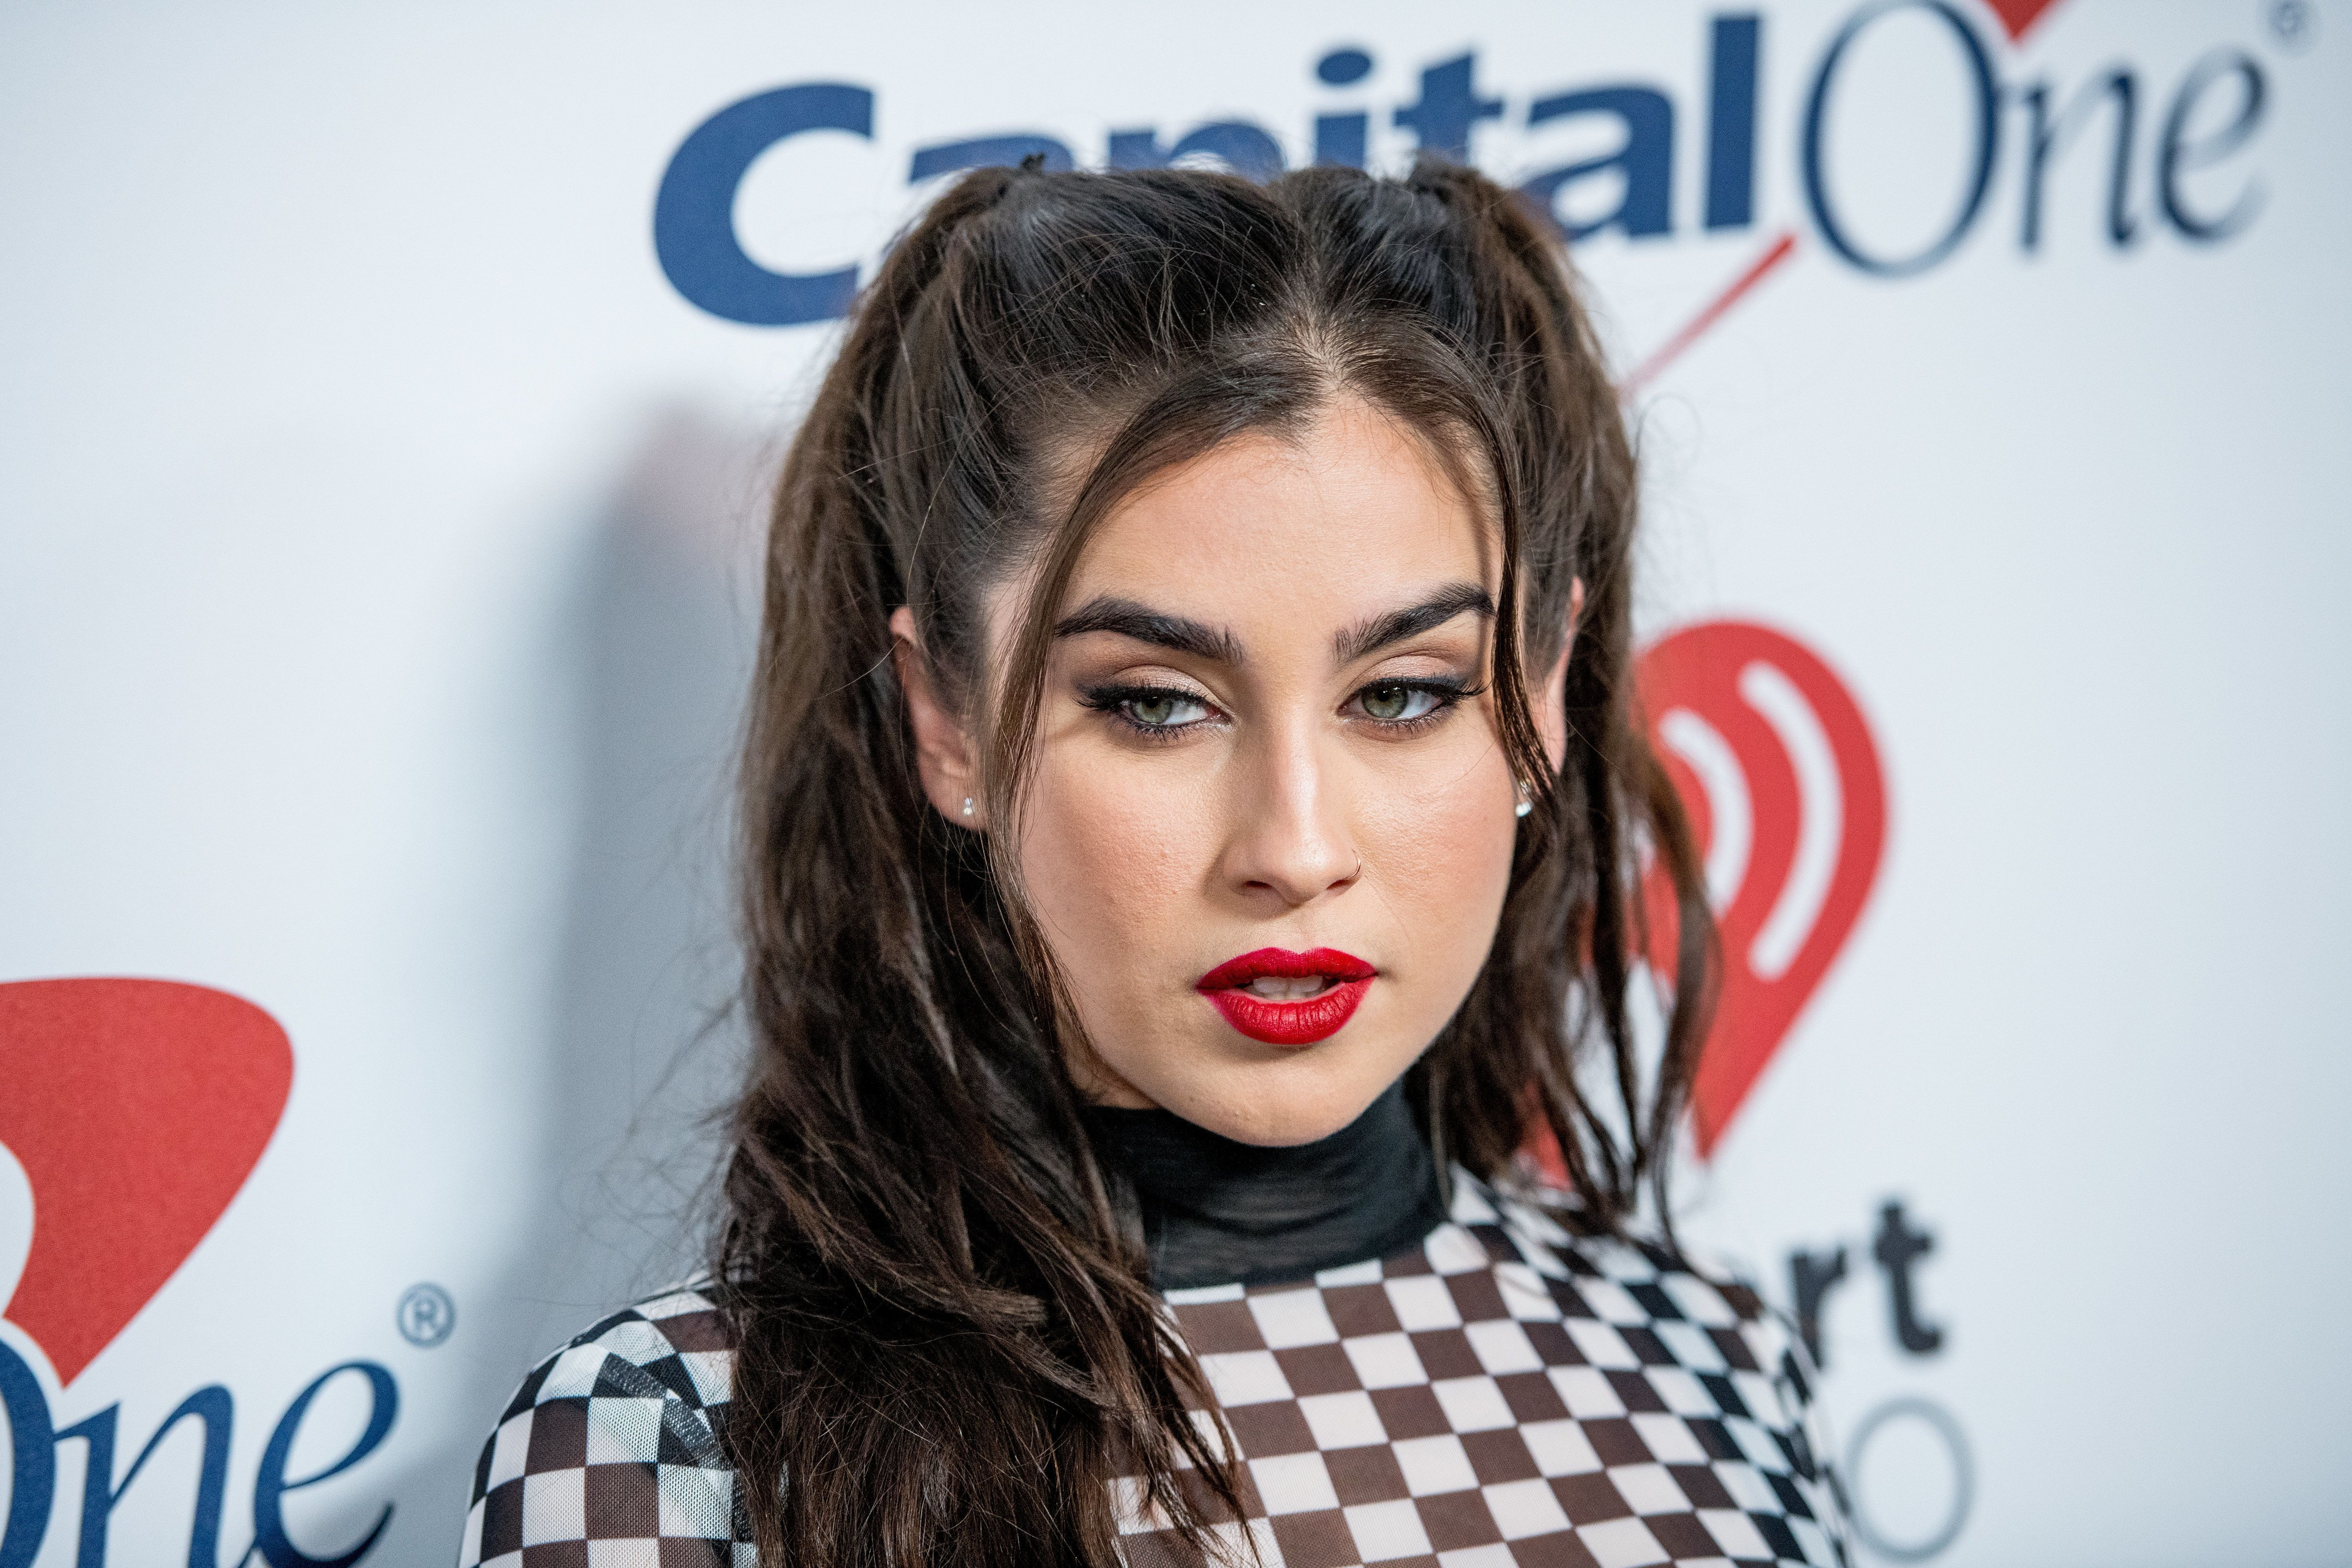 NEW YORK, NY - DECEMBER 08:  Lauren Jauregui attends Z100's iHeartRadio Jingle Ball 2017 at Madison Square Garden on December 8, 2017 in New York City.  (Photo by Roy Rochlin/FilmMagic)